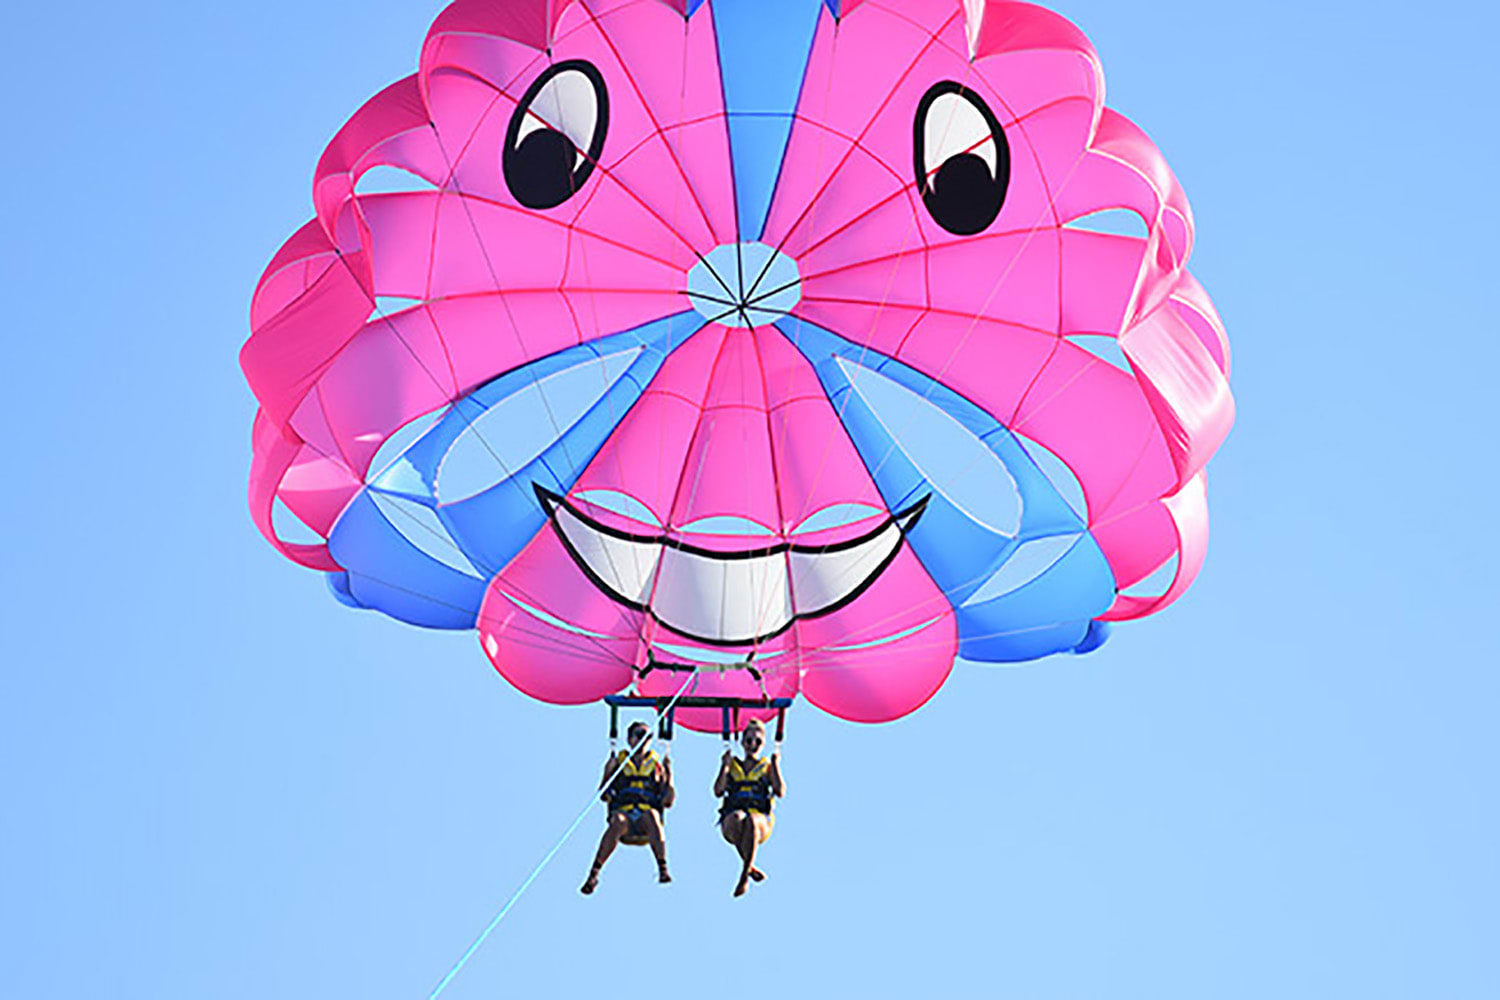 Gold Coast Parasail - For 2